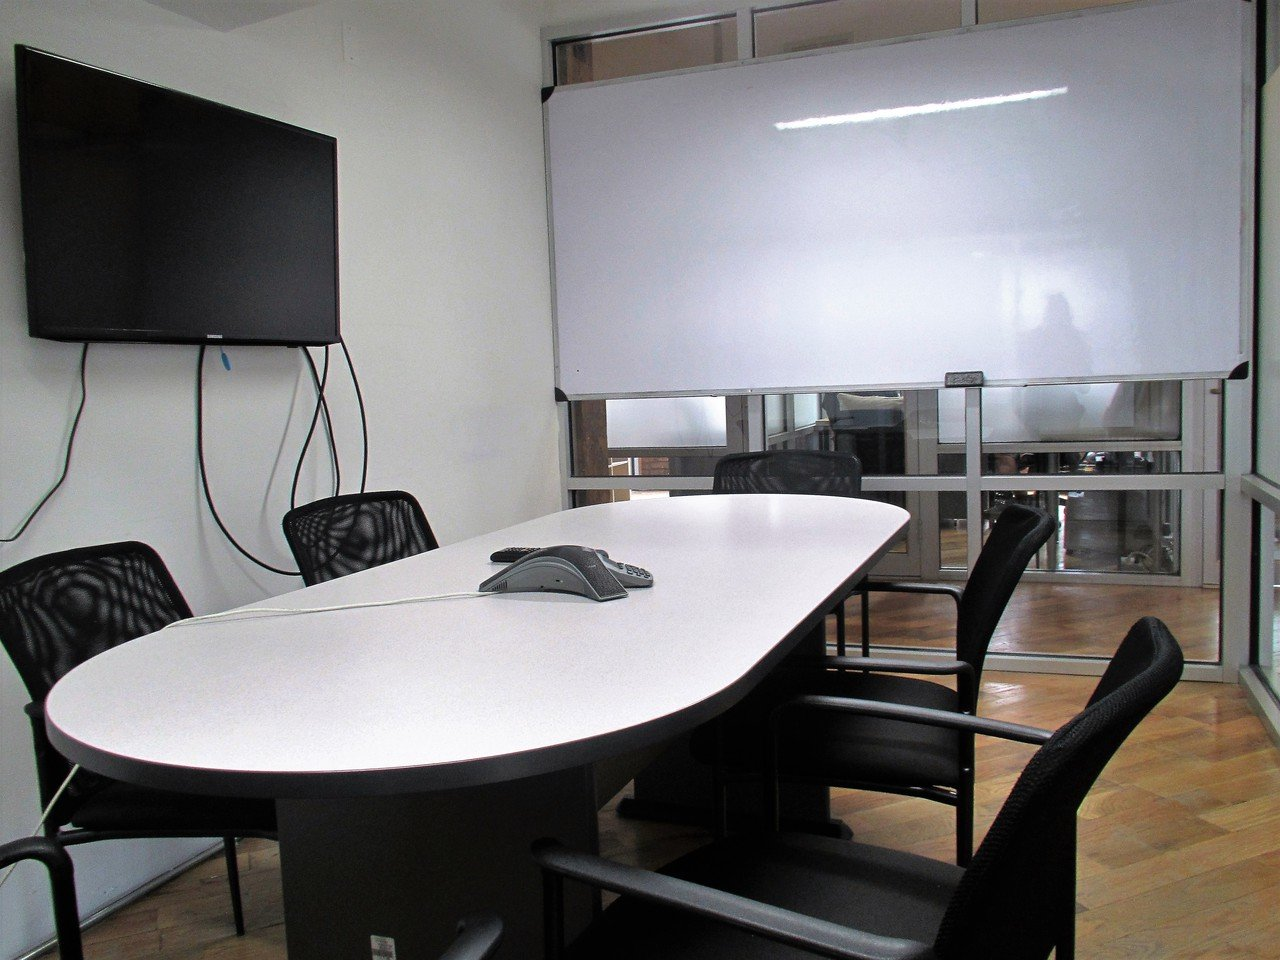 NYC conference rooms Salle de réunion Meeting Room image 0